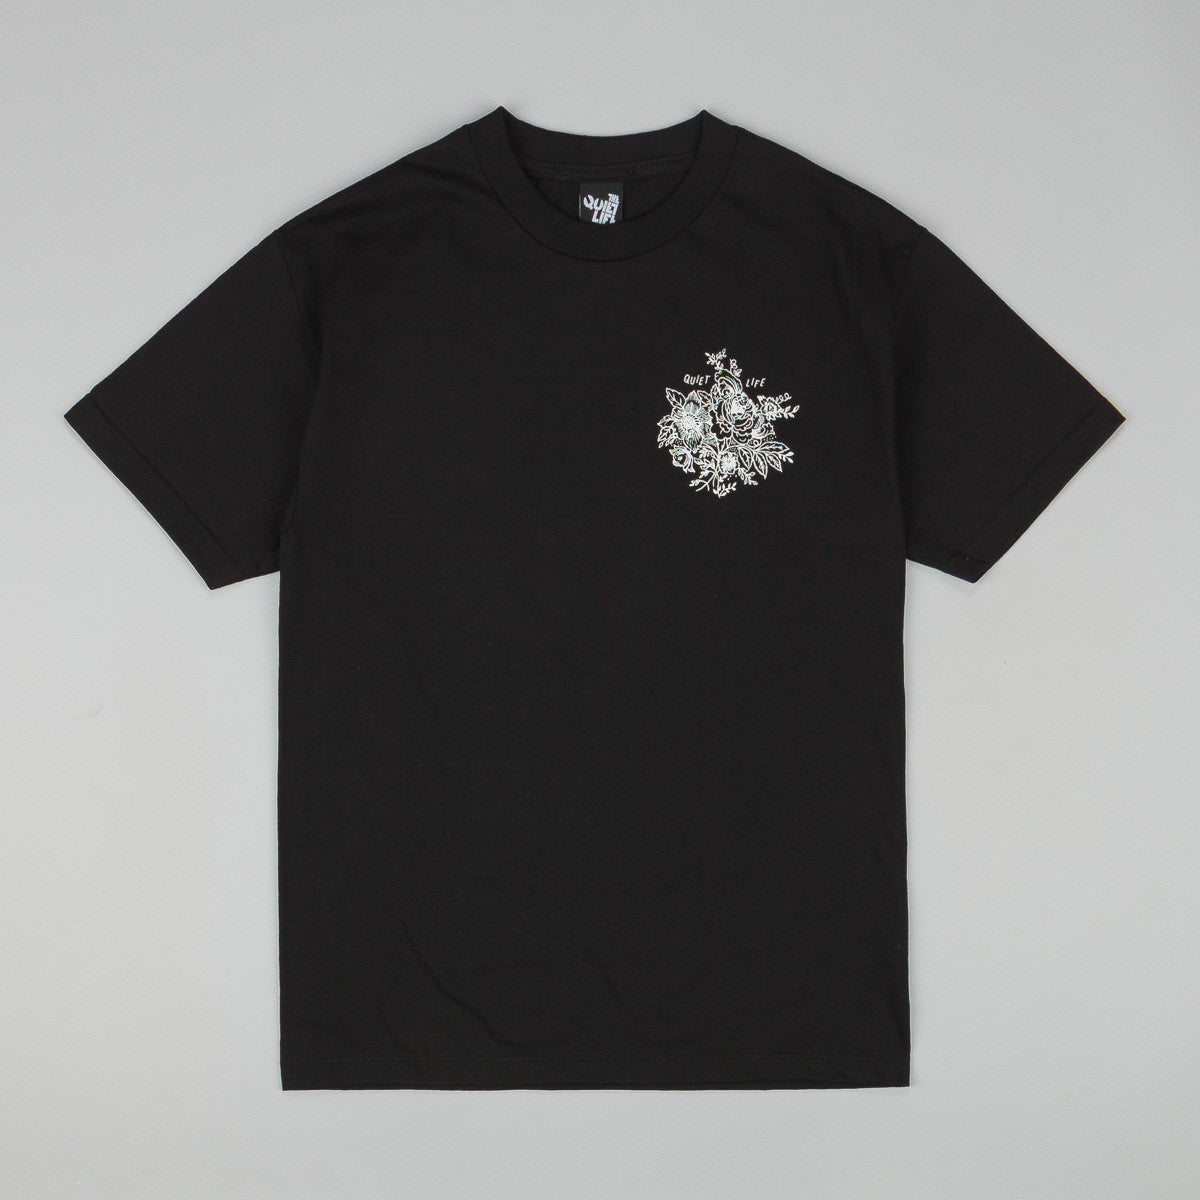 The Quiet Life Duggan T-Shirt - Black